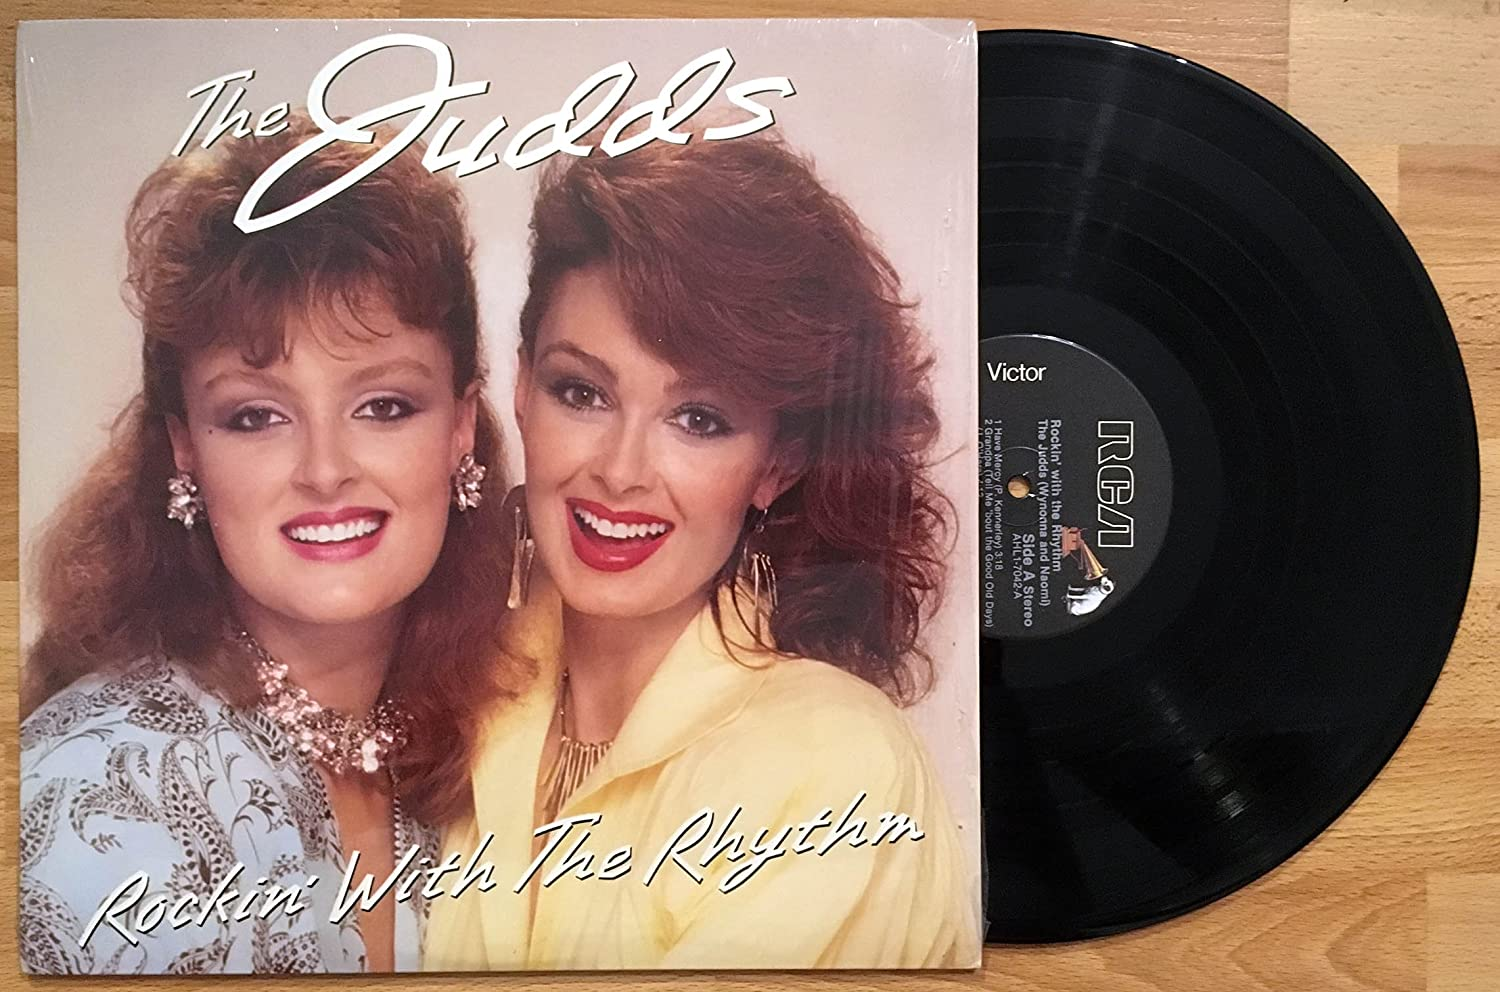 Rockin' with the Rhythm - The Judds Record